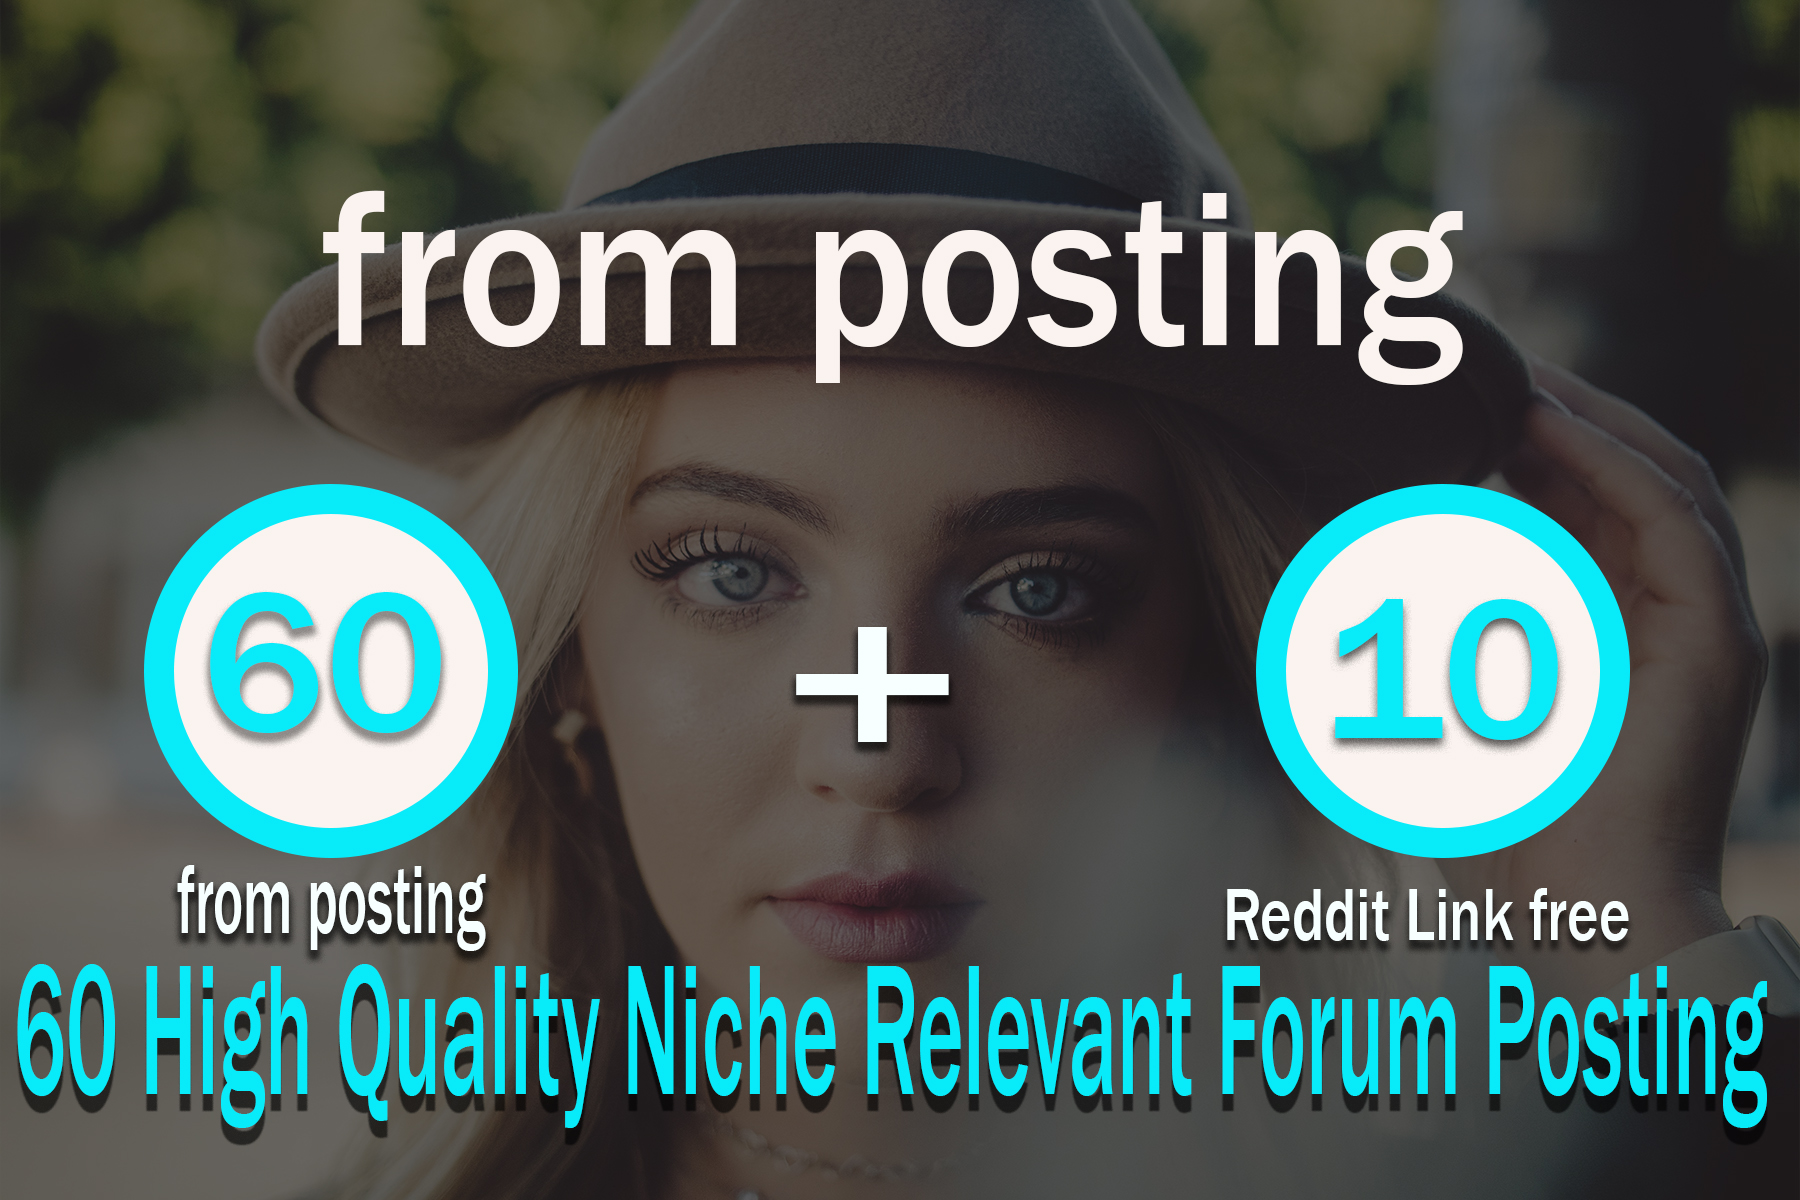 60 High Quality Niche Relevant Forum Posting